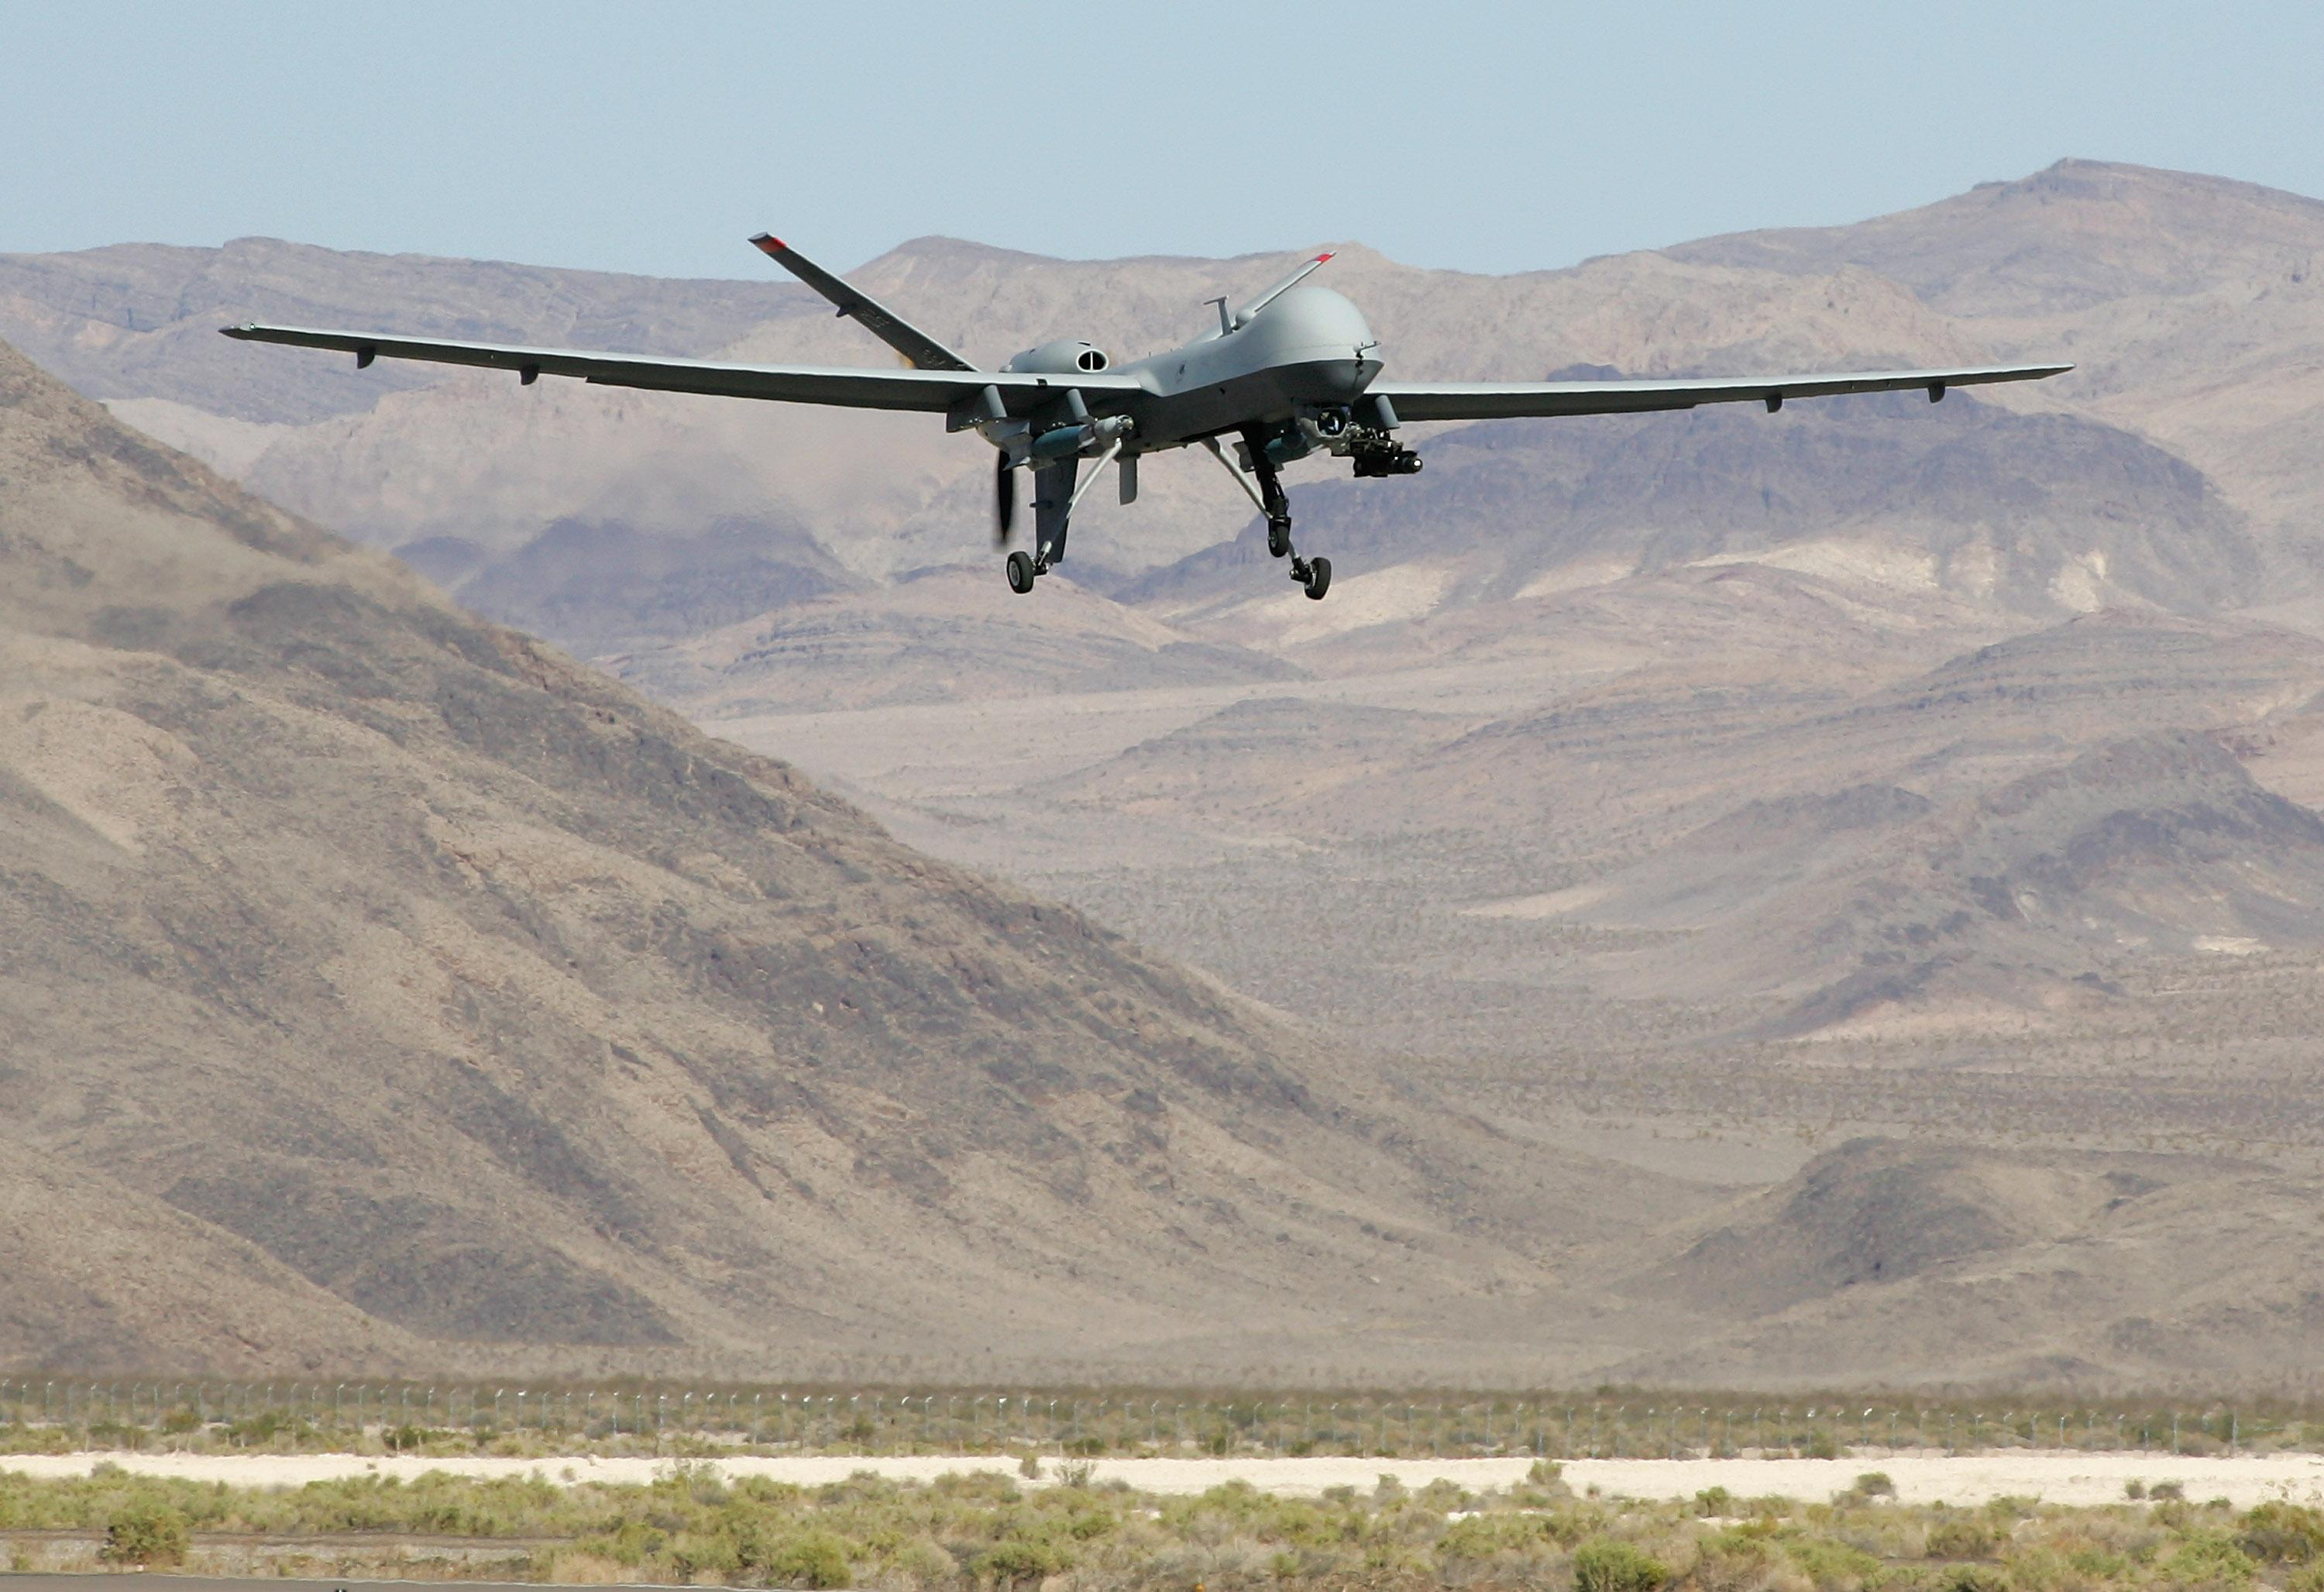 An MQ-9 Reaper is seen on August 8, 2007, in Indian Springs, Nevada